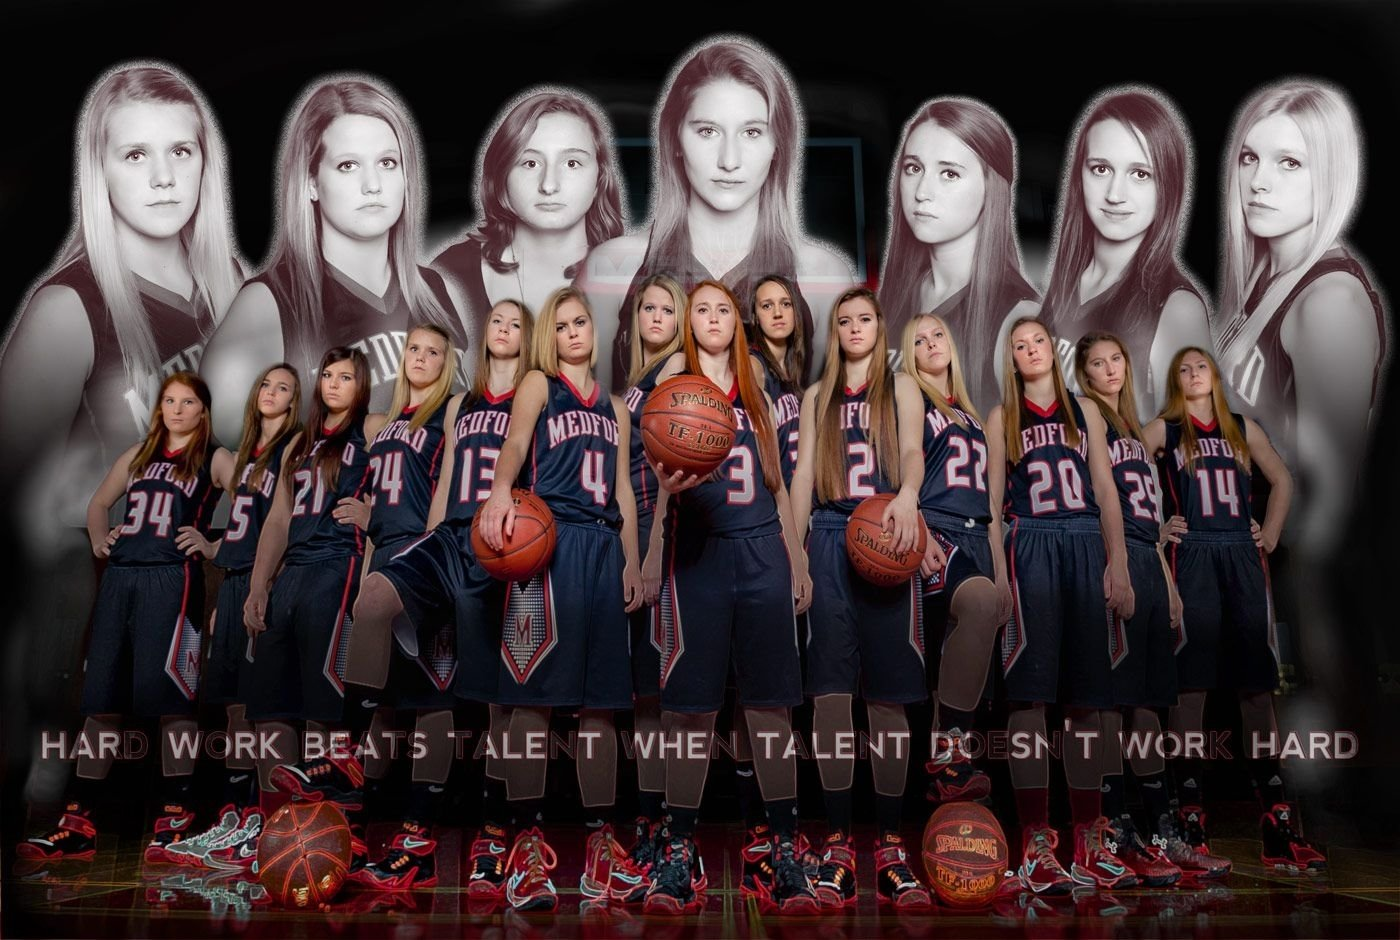 10 Stylish Basketball Poster Ideas For High School basketball poster ideas girls basketball high school sports poster 2020